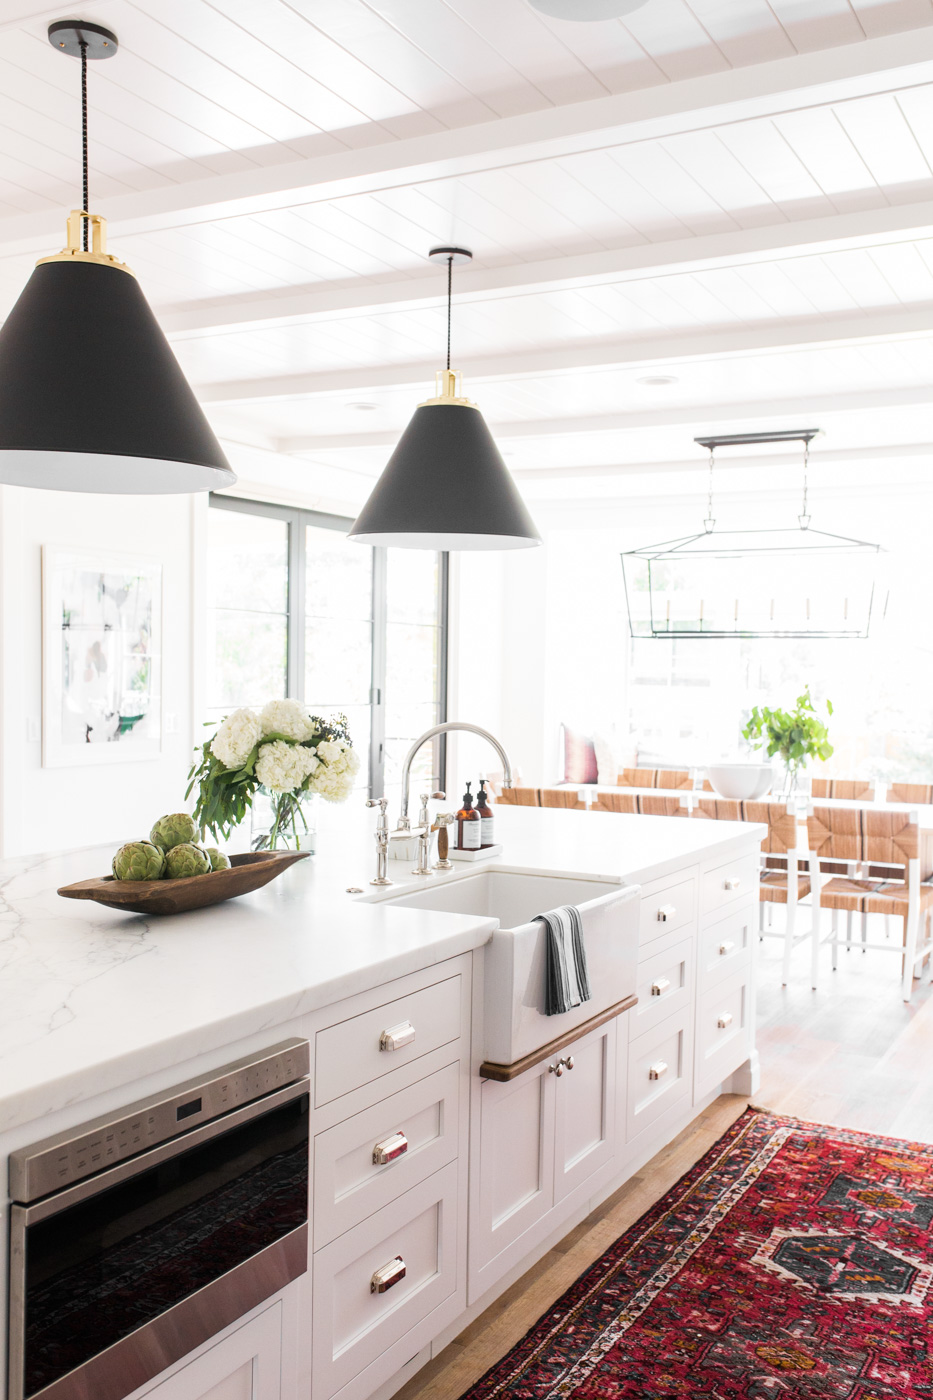 Modern Farmhouse Meets The Hamptons In Studio McGeeu0027s Latest Remodel     Vintage Kitchen Rug,